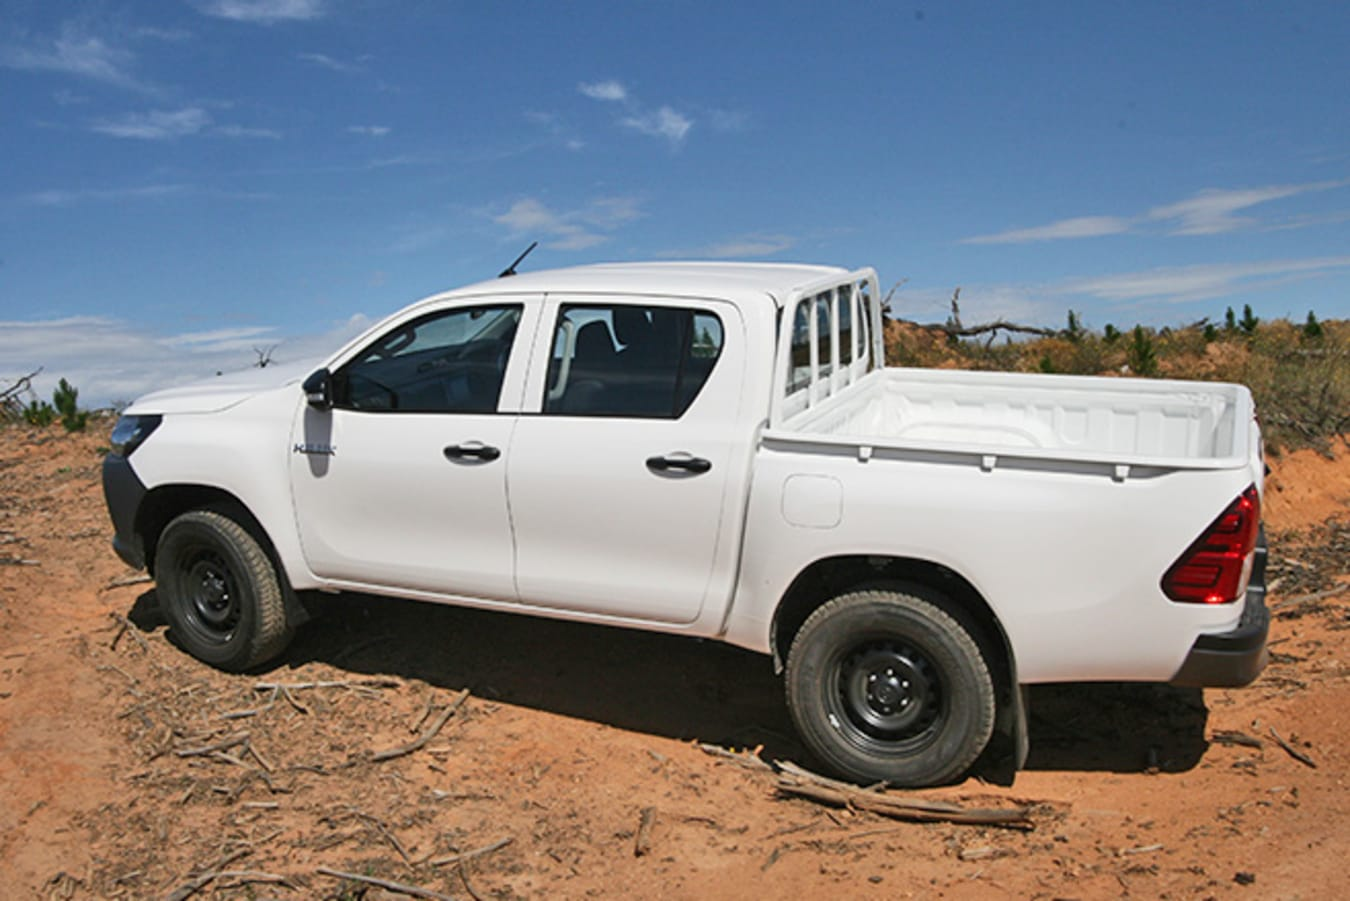 Toyota HiLux 4x4 Workmate side